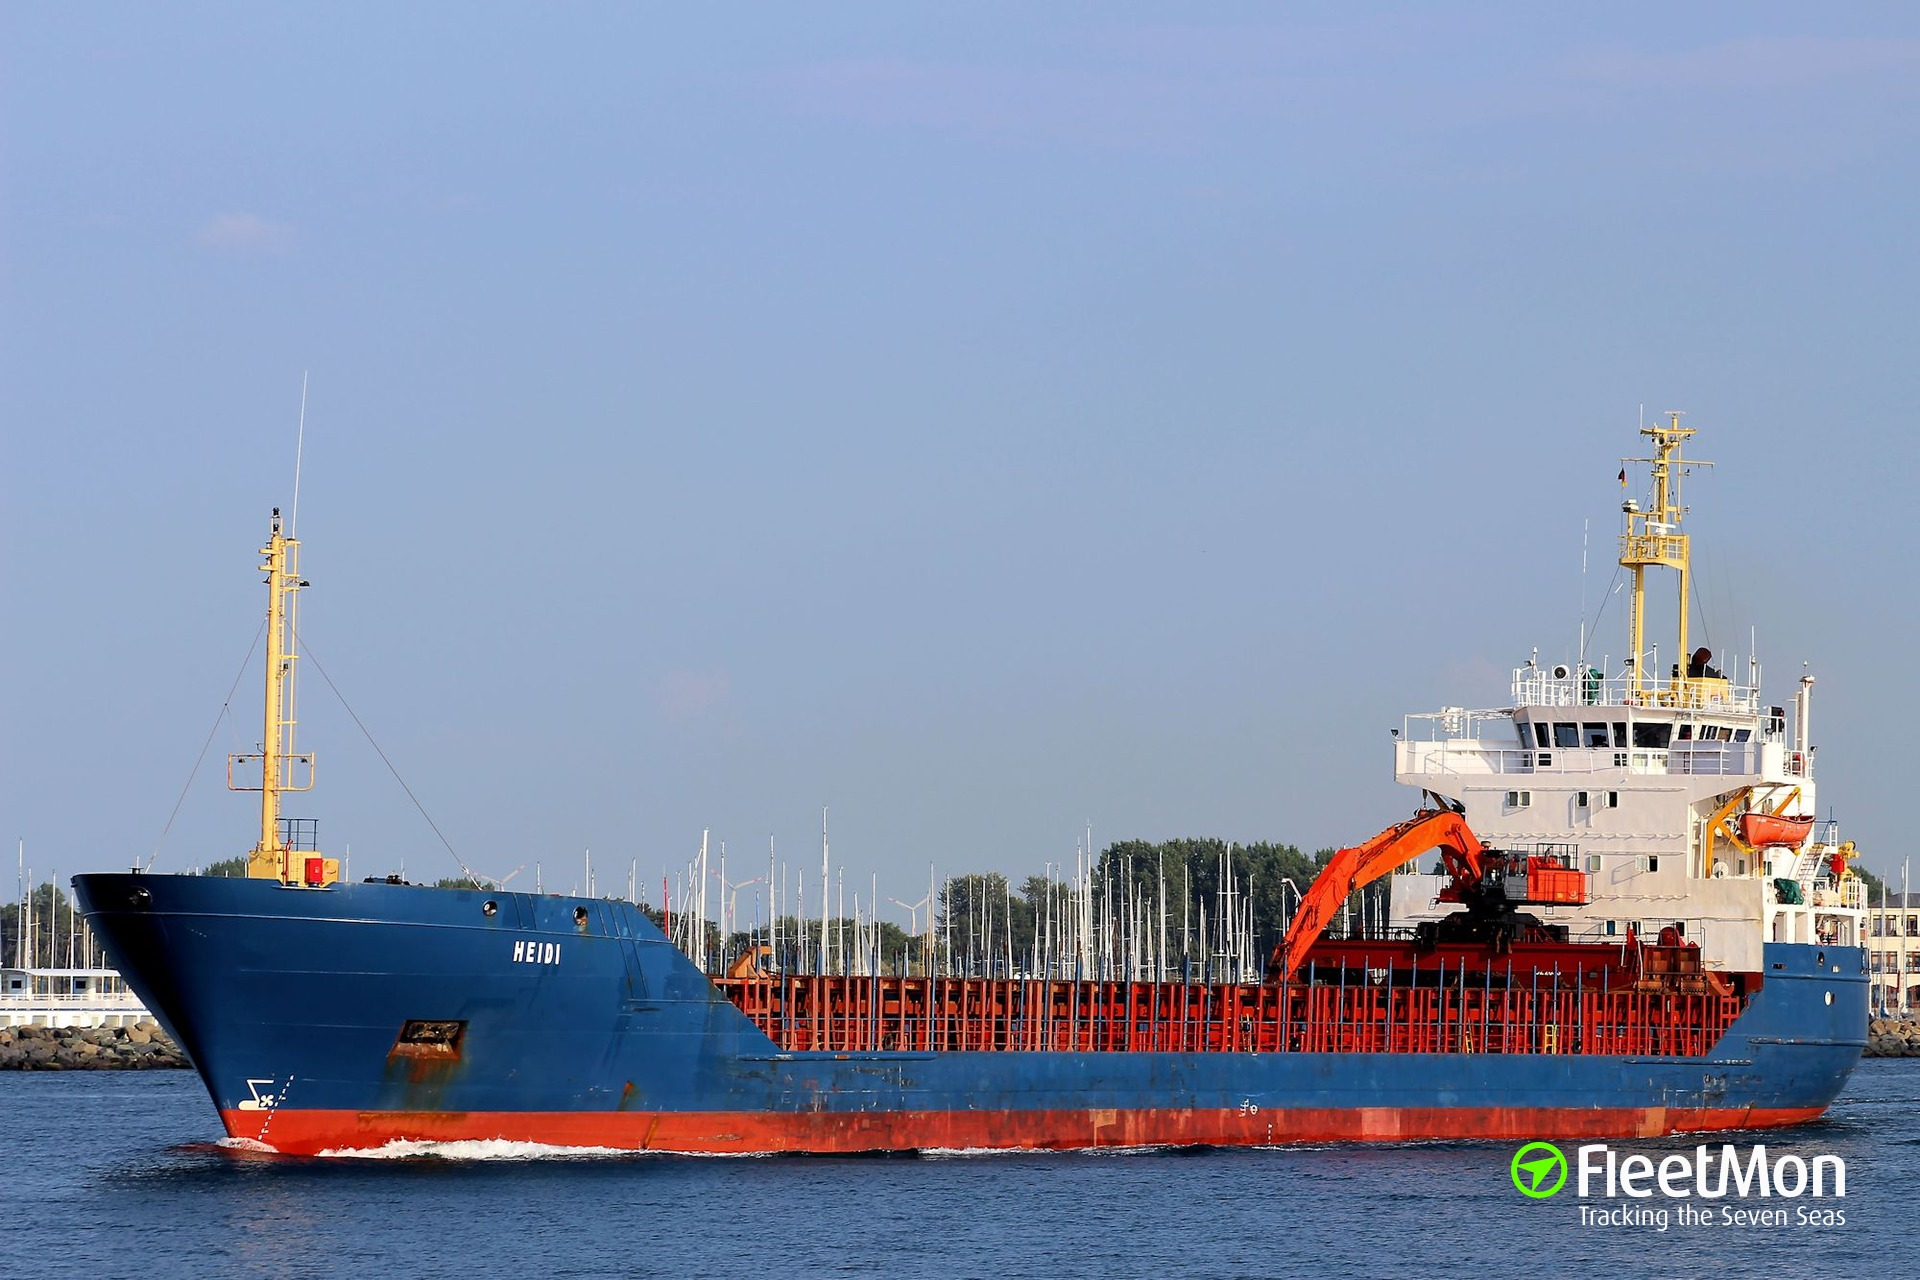 General cargo vessel Heidi deadly accident